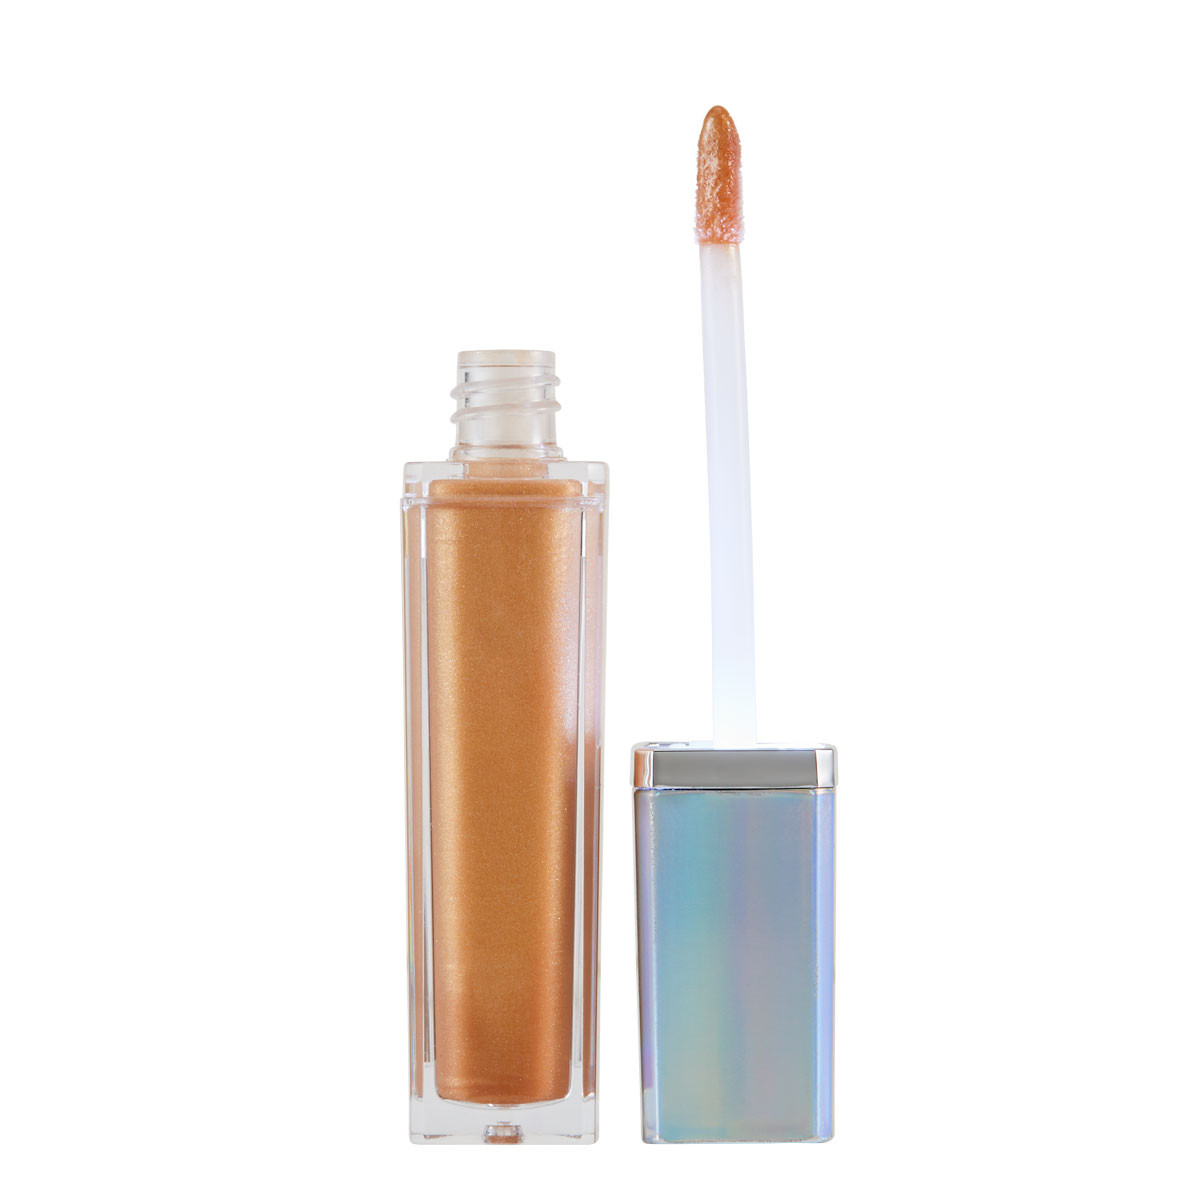 Out of the Blue Light Up High Shine Lip Gloss in Goals